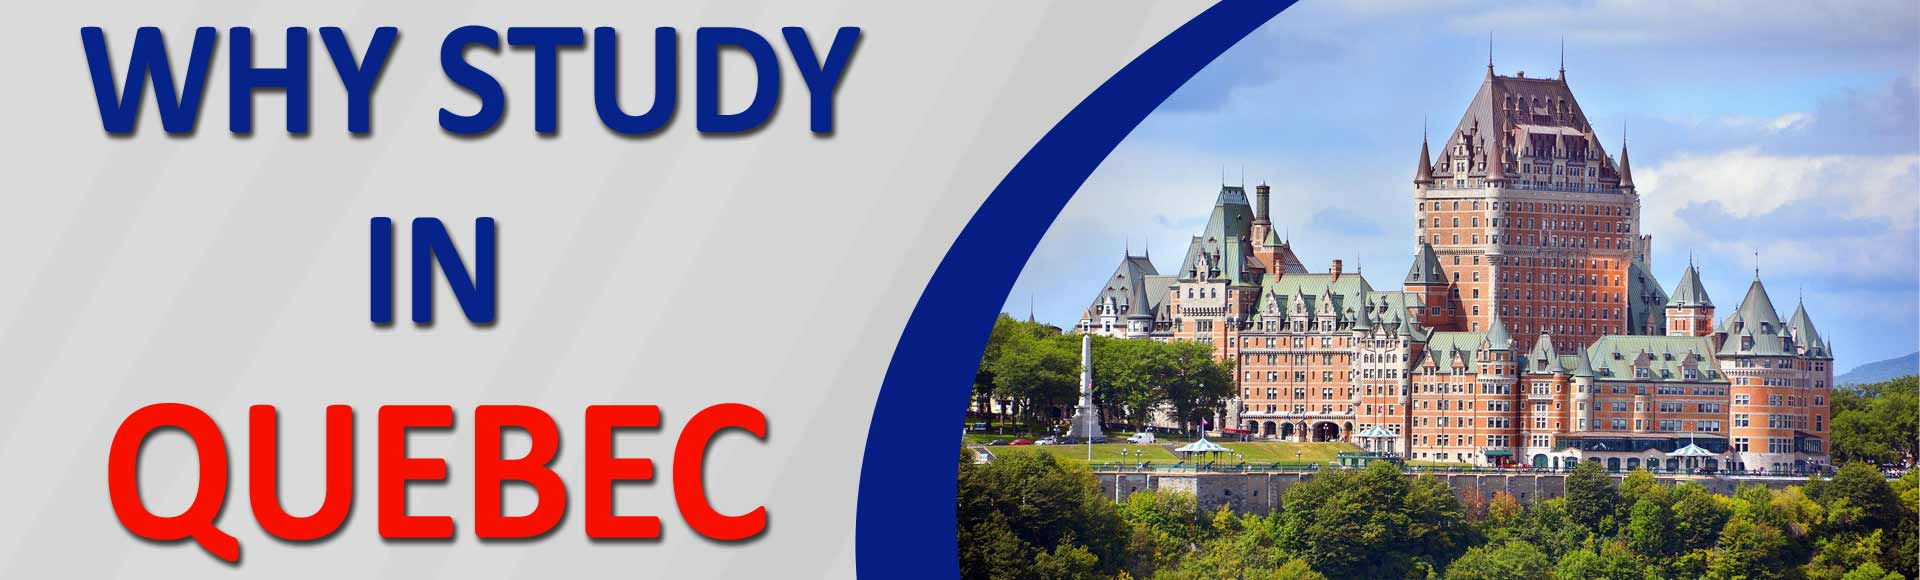 Top Reasons Why Study in Quebec